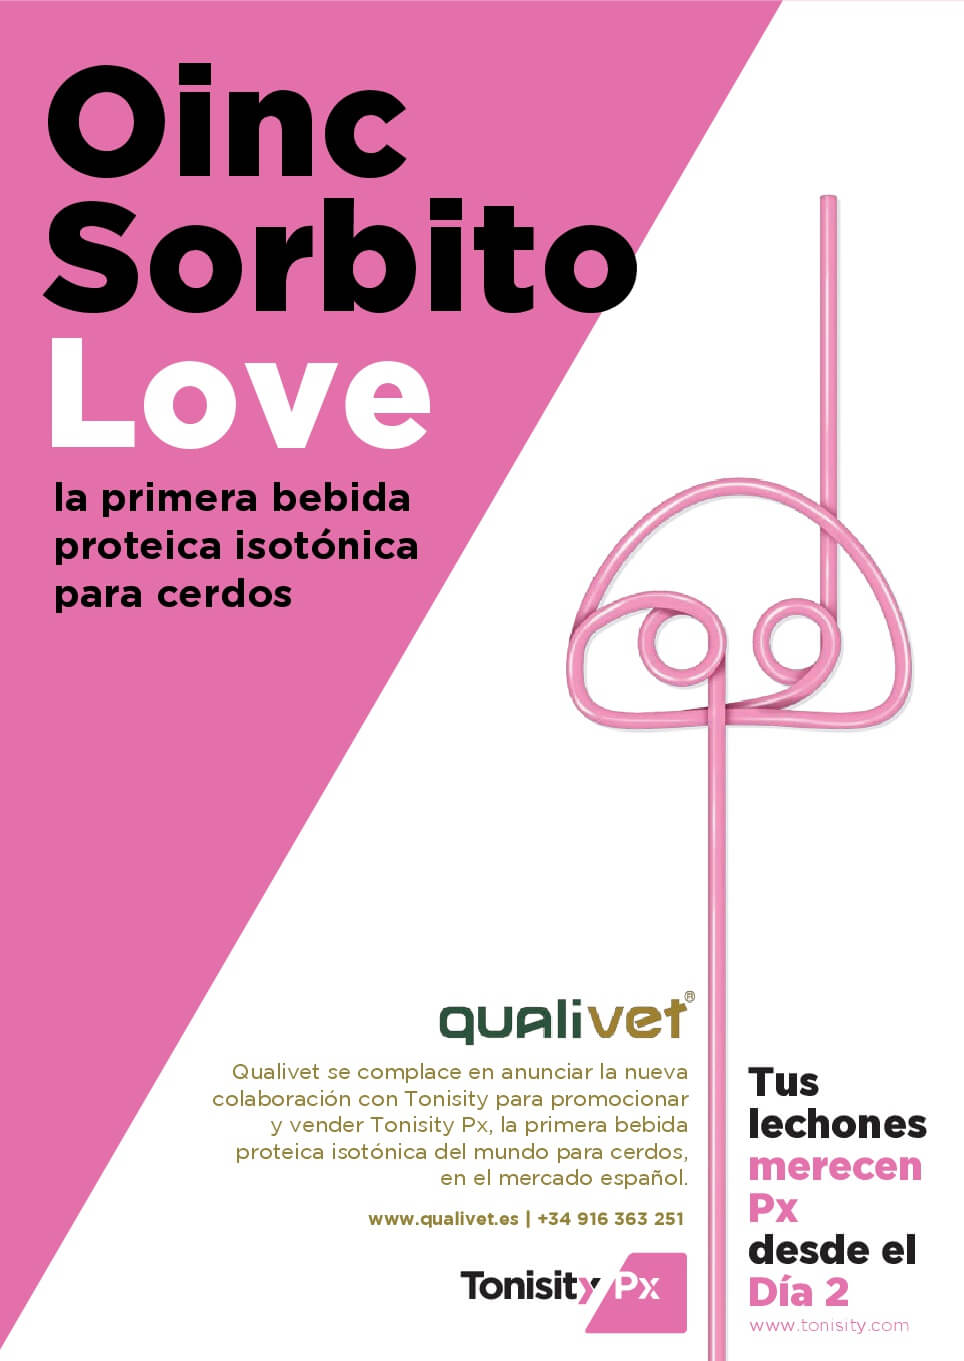 Sorbito Love Qualivet Tonisity